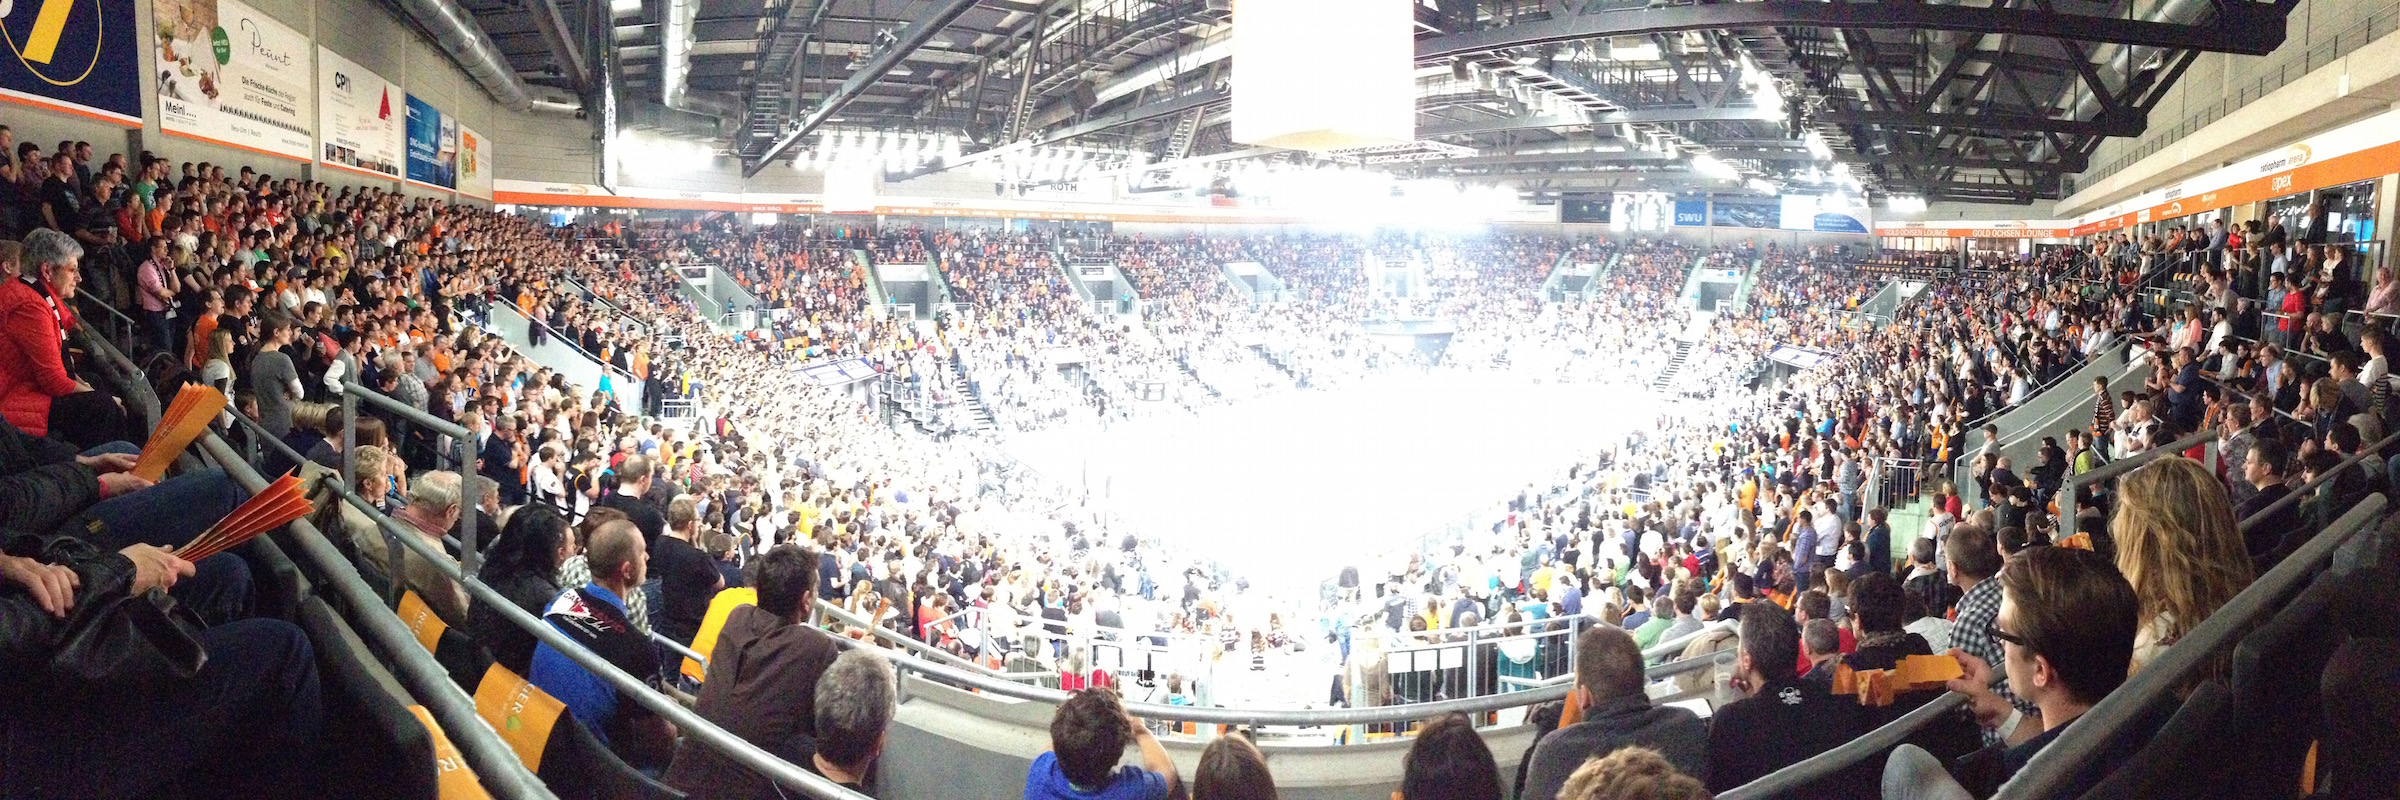 Ratiopharm Ulm Basketball in der Ratiopharm Arena